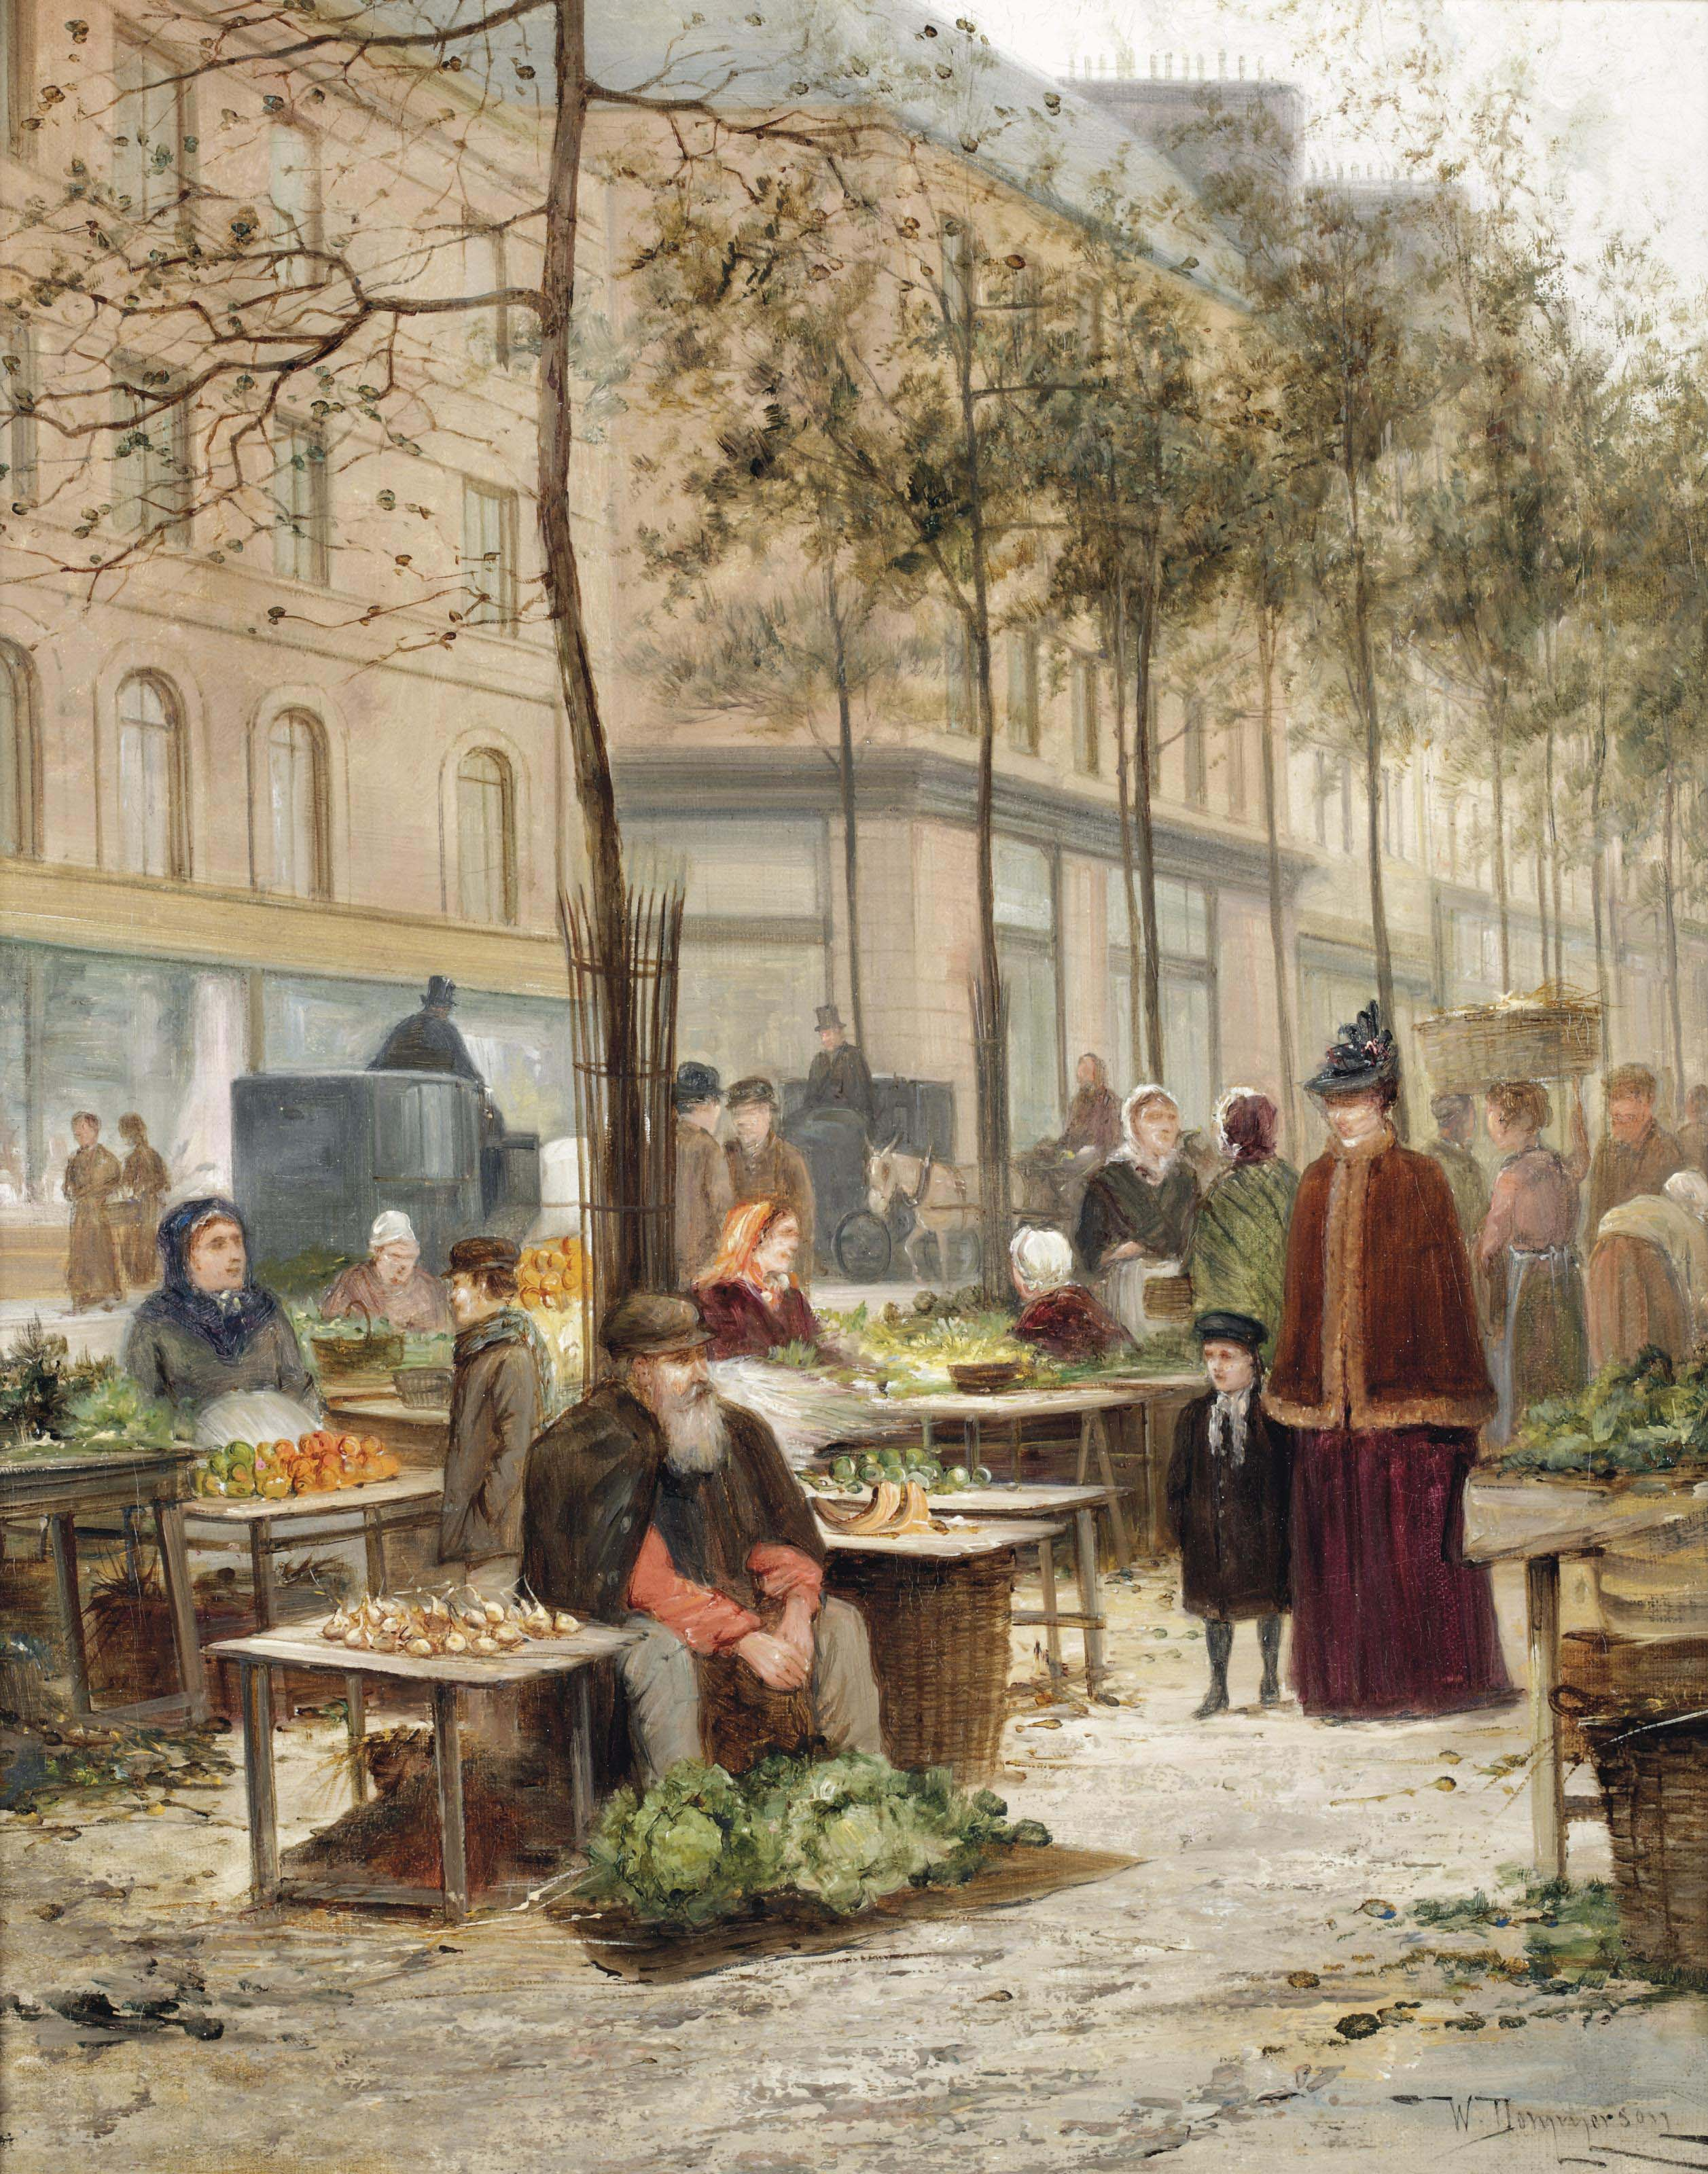 Marketday on Place des Halles, Paris